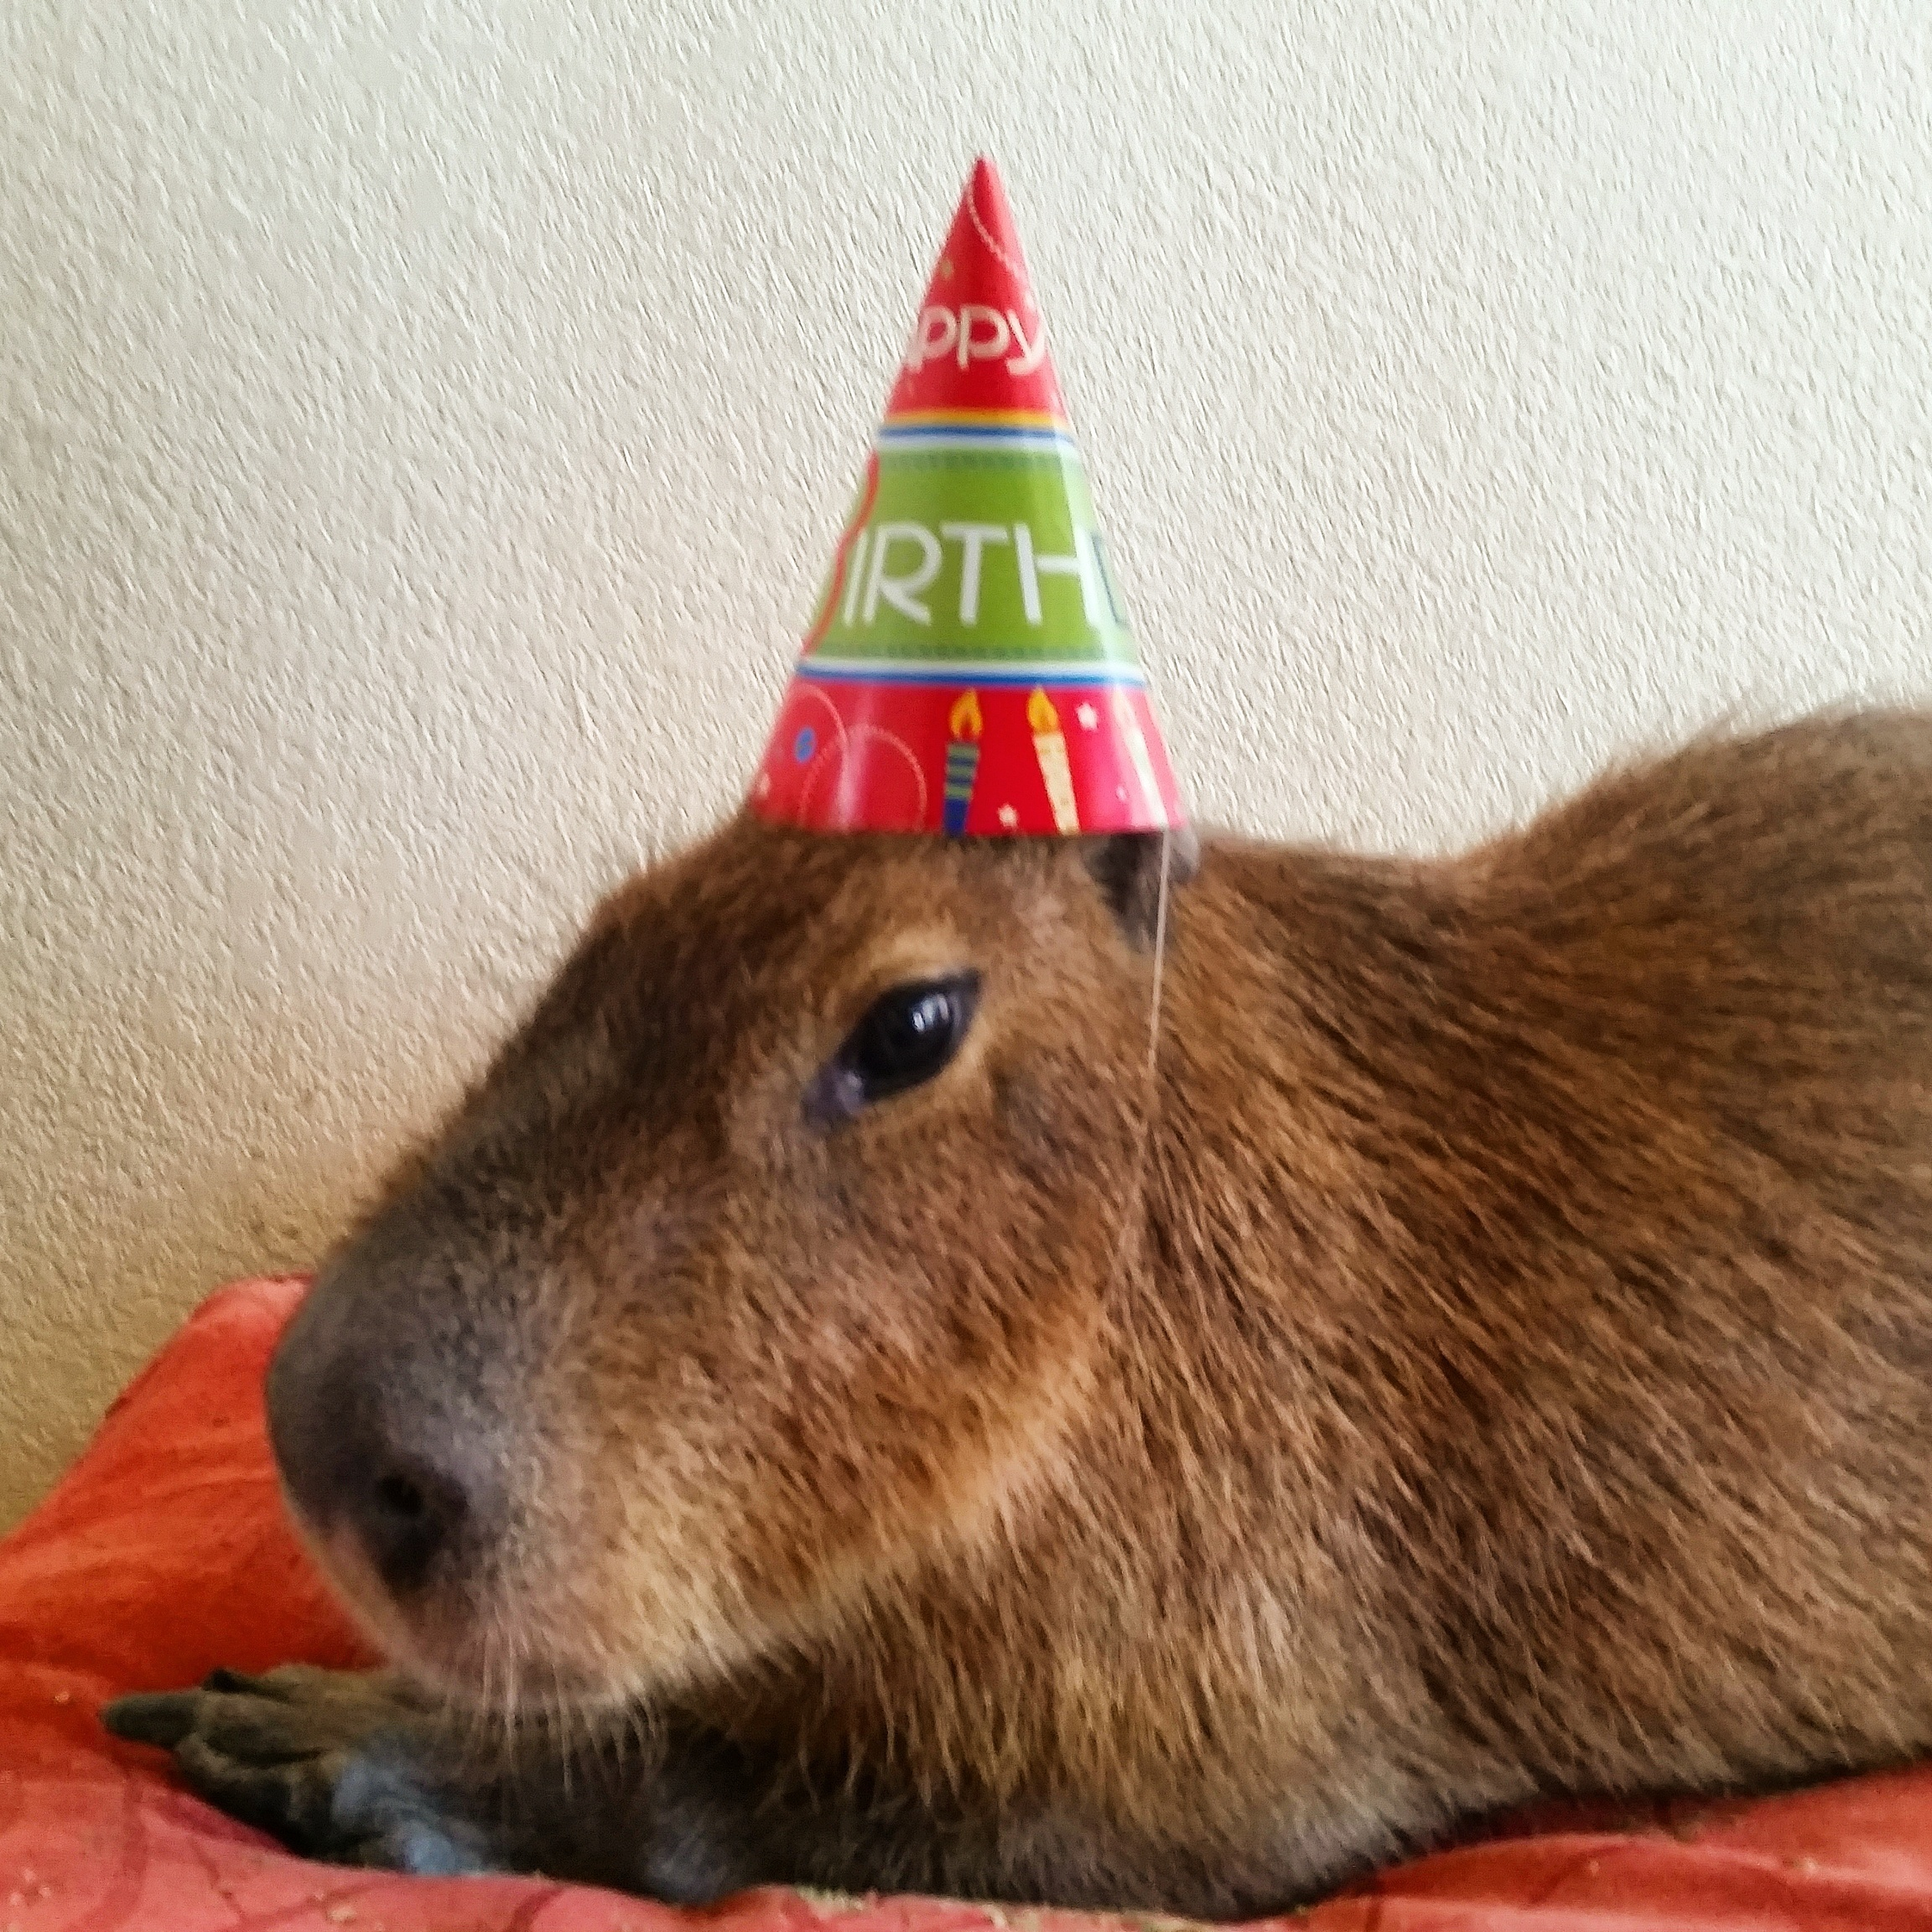 Capybara Gets a Birthday Cake